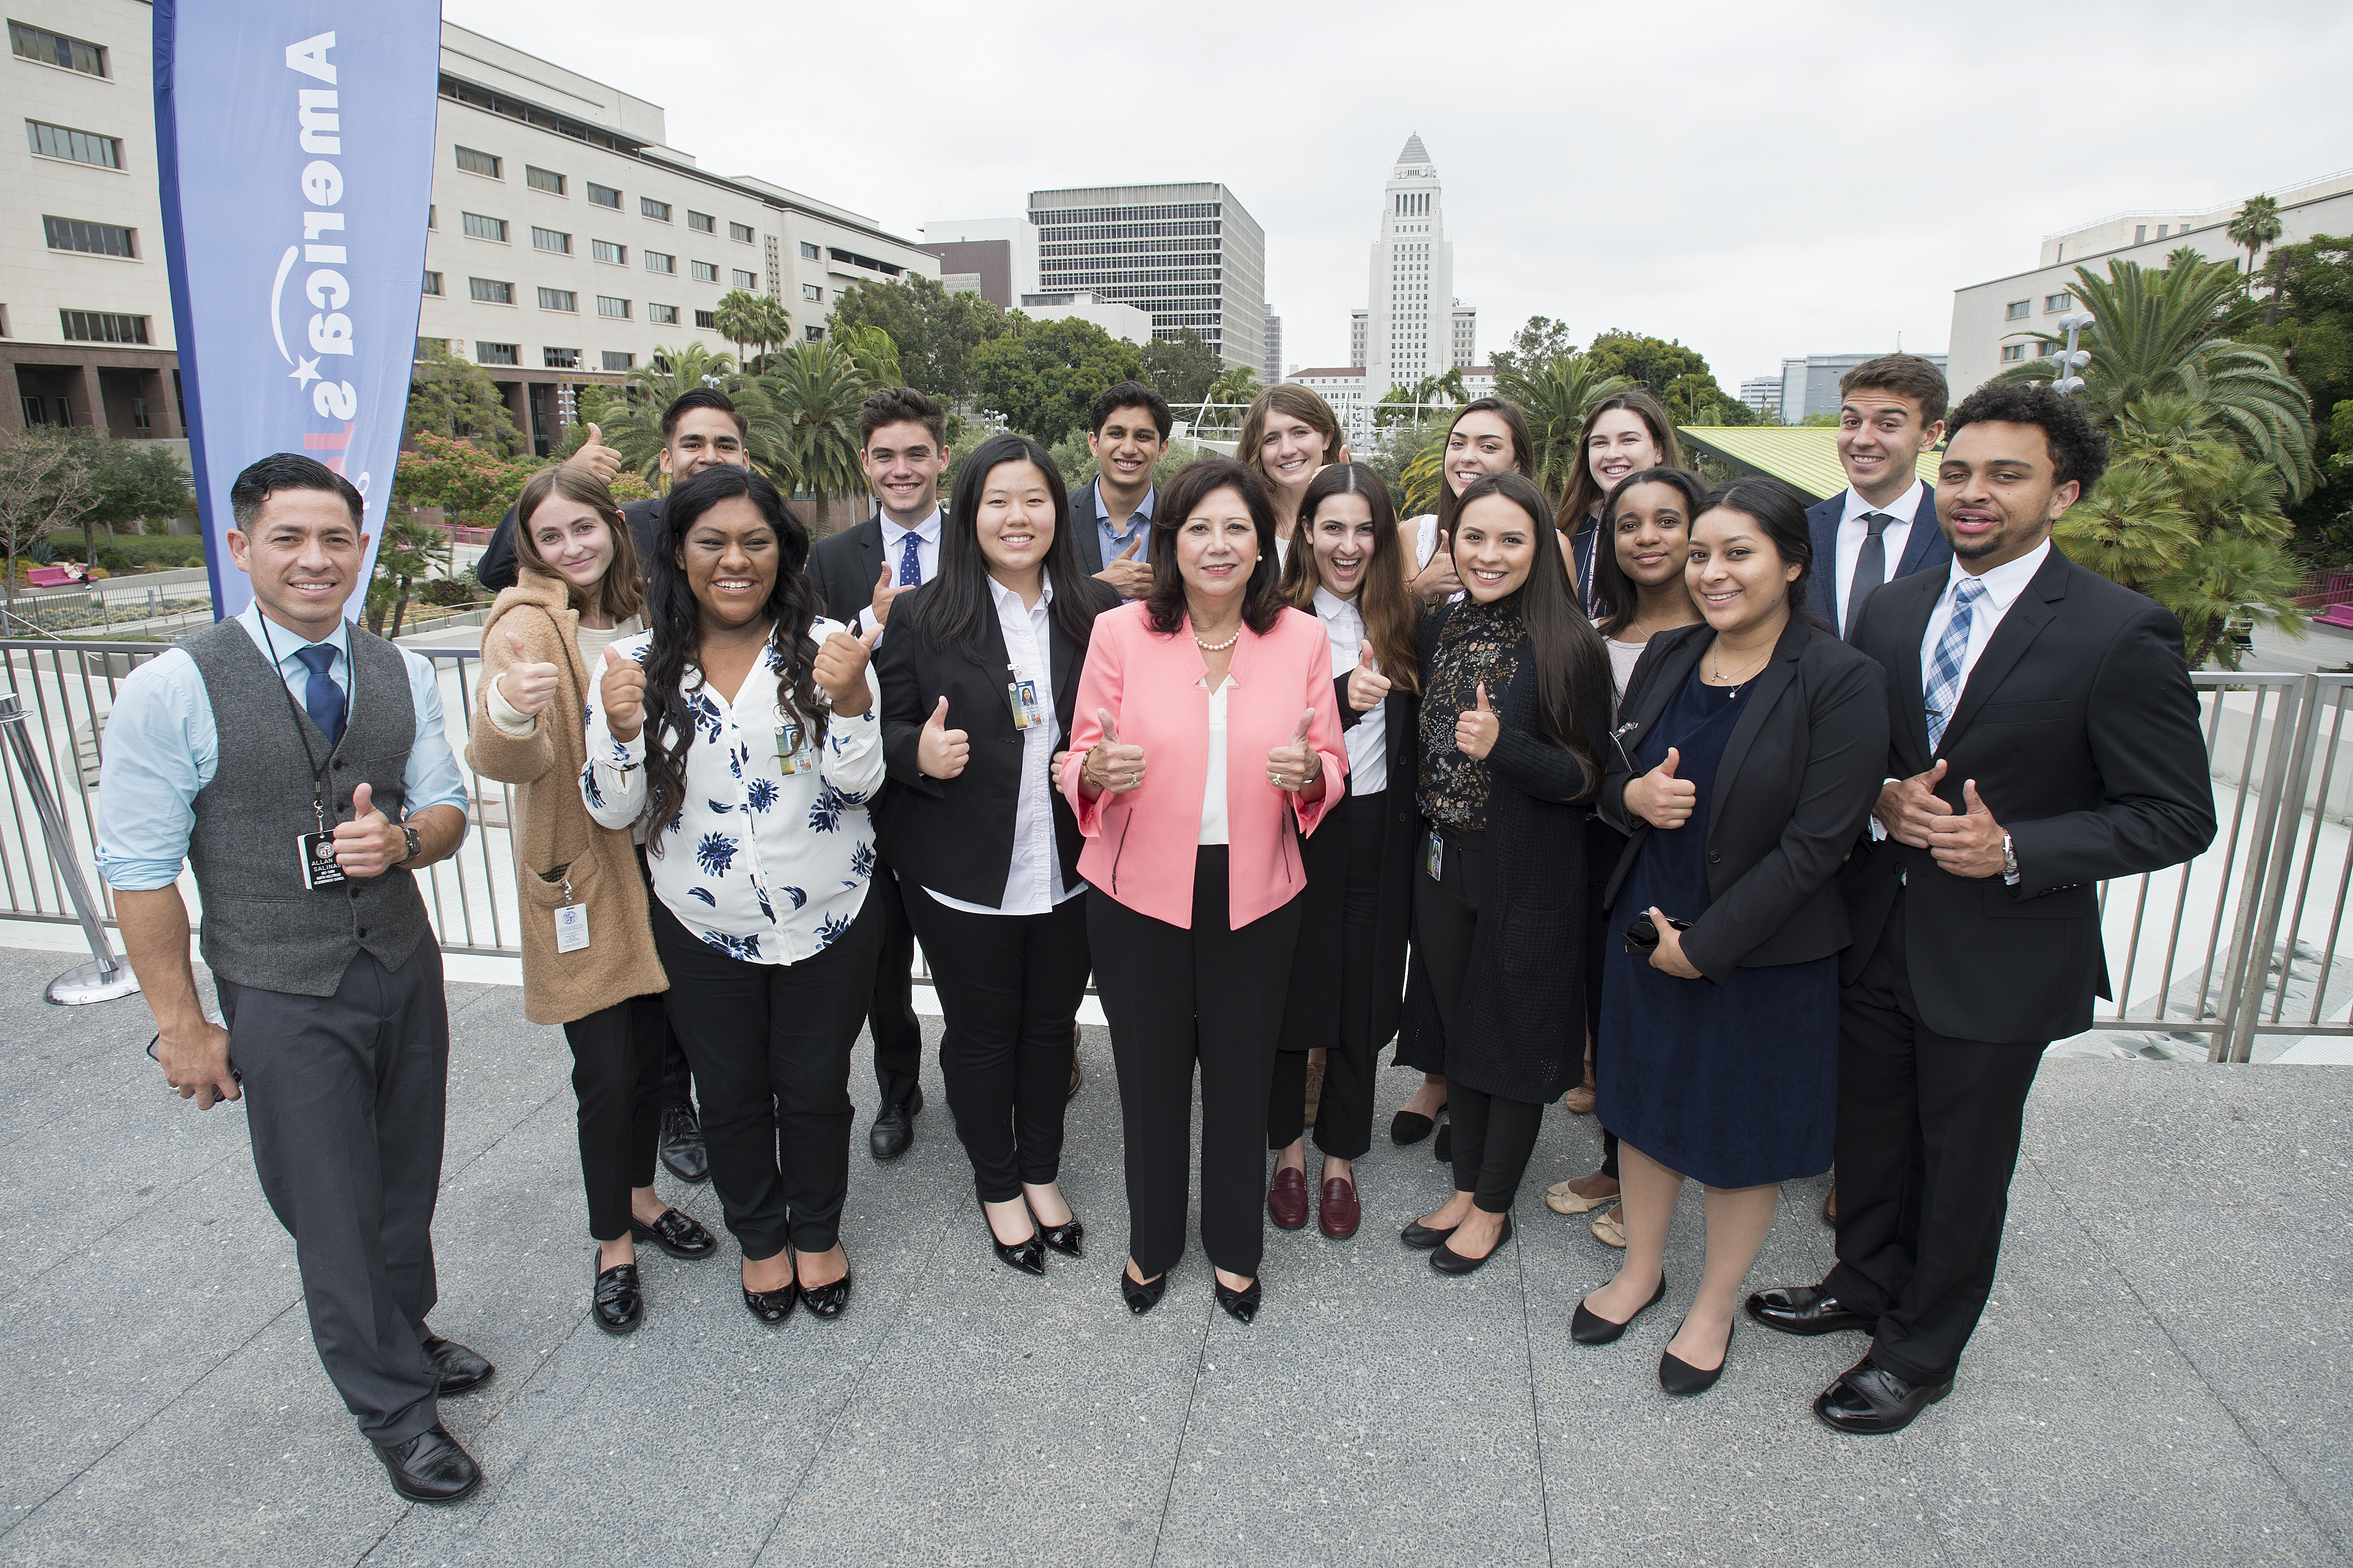 LA County to Launch Youth-Employee Mentoring Program